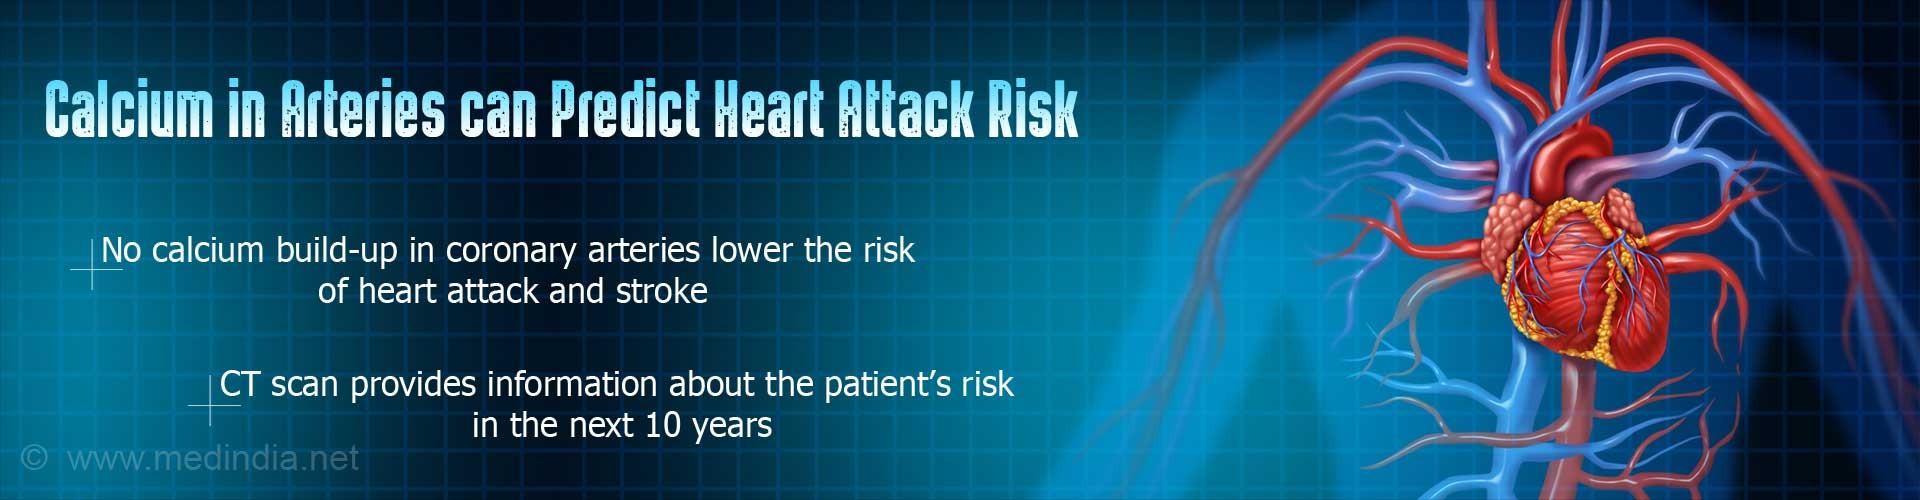 Does Calcium in Arteries Increase the Risk of Heart Attack?